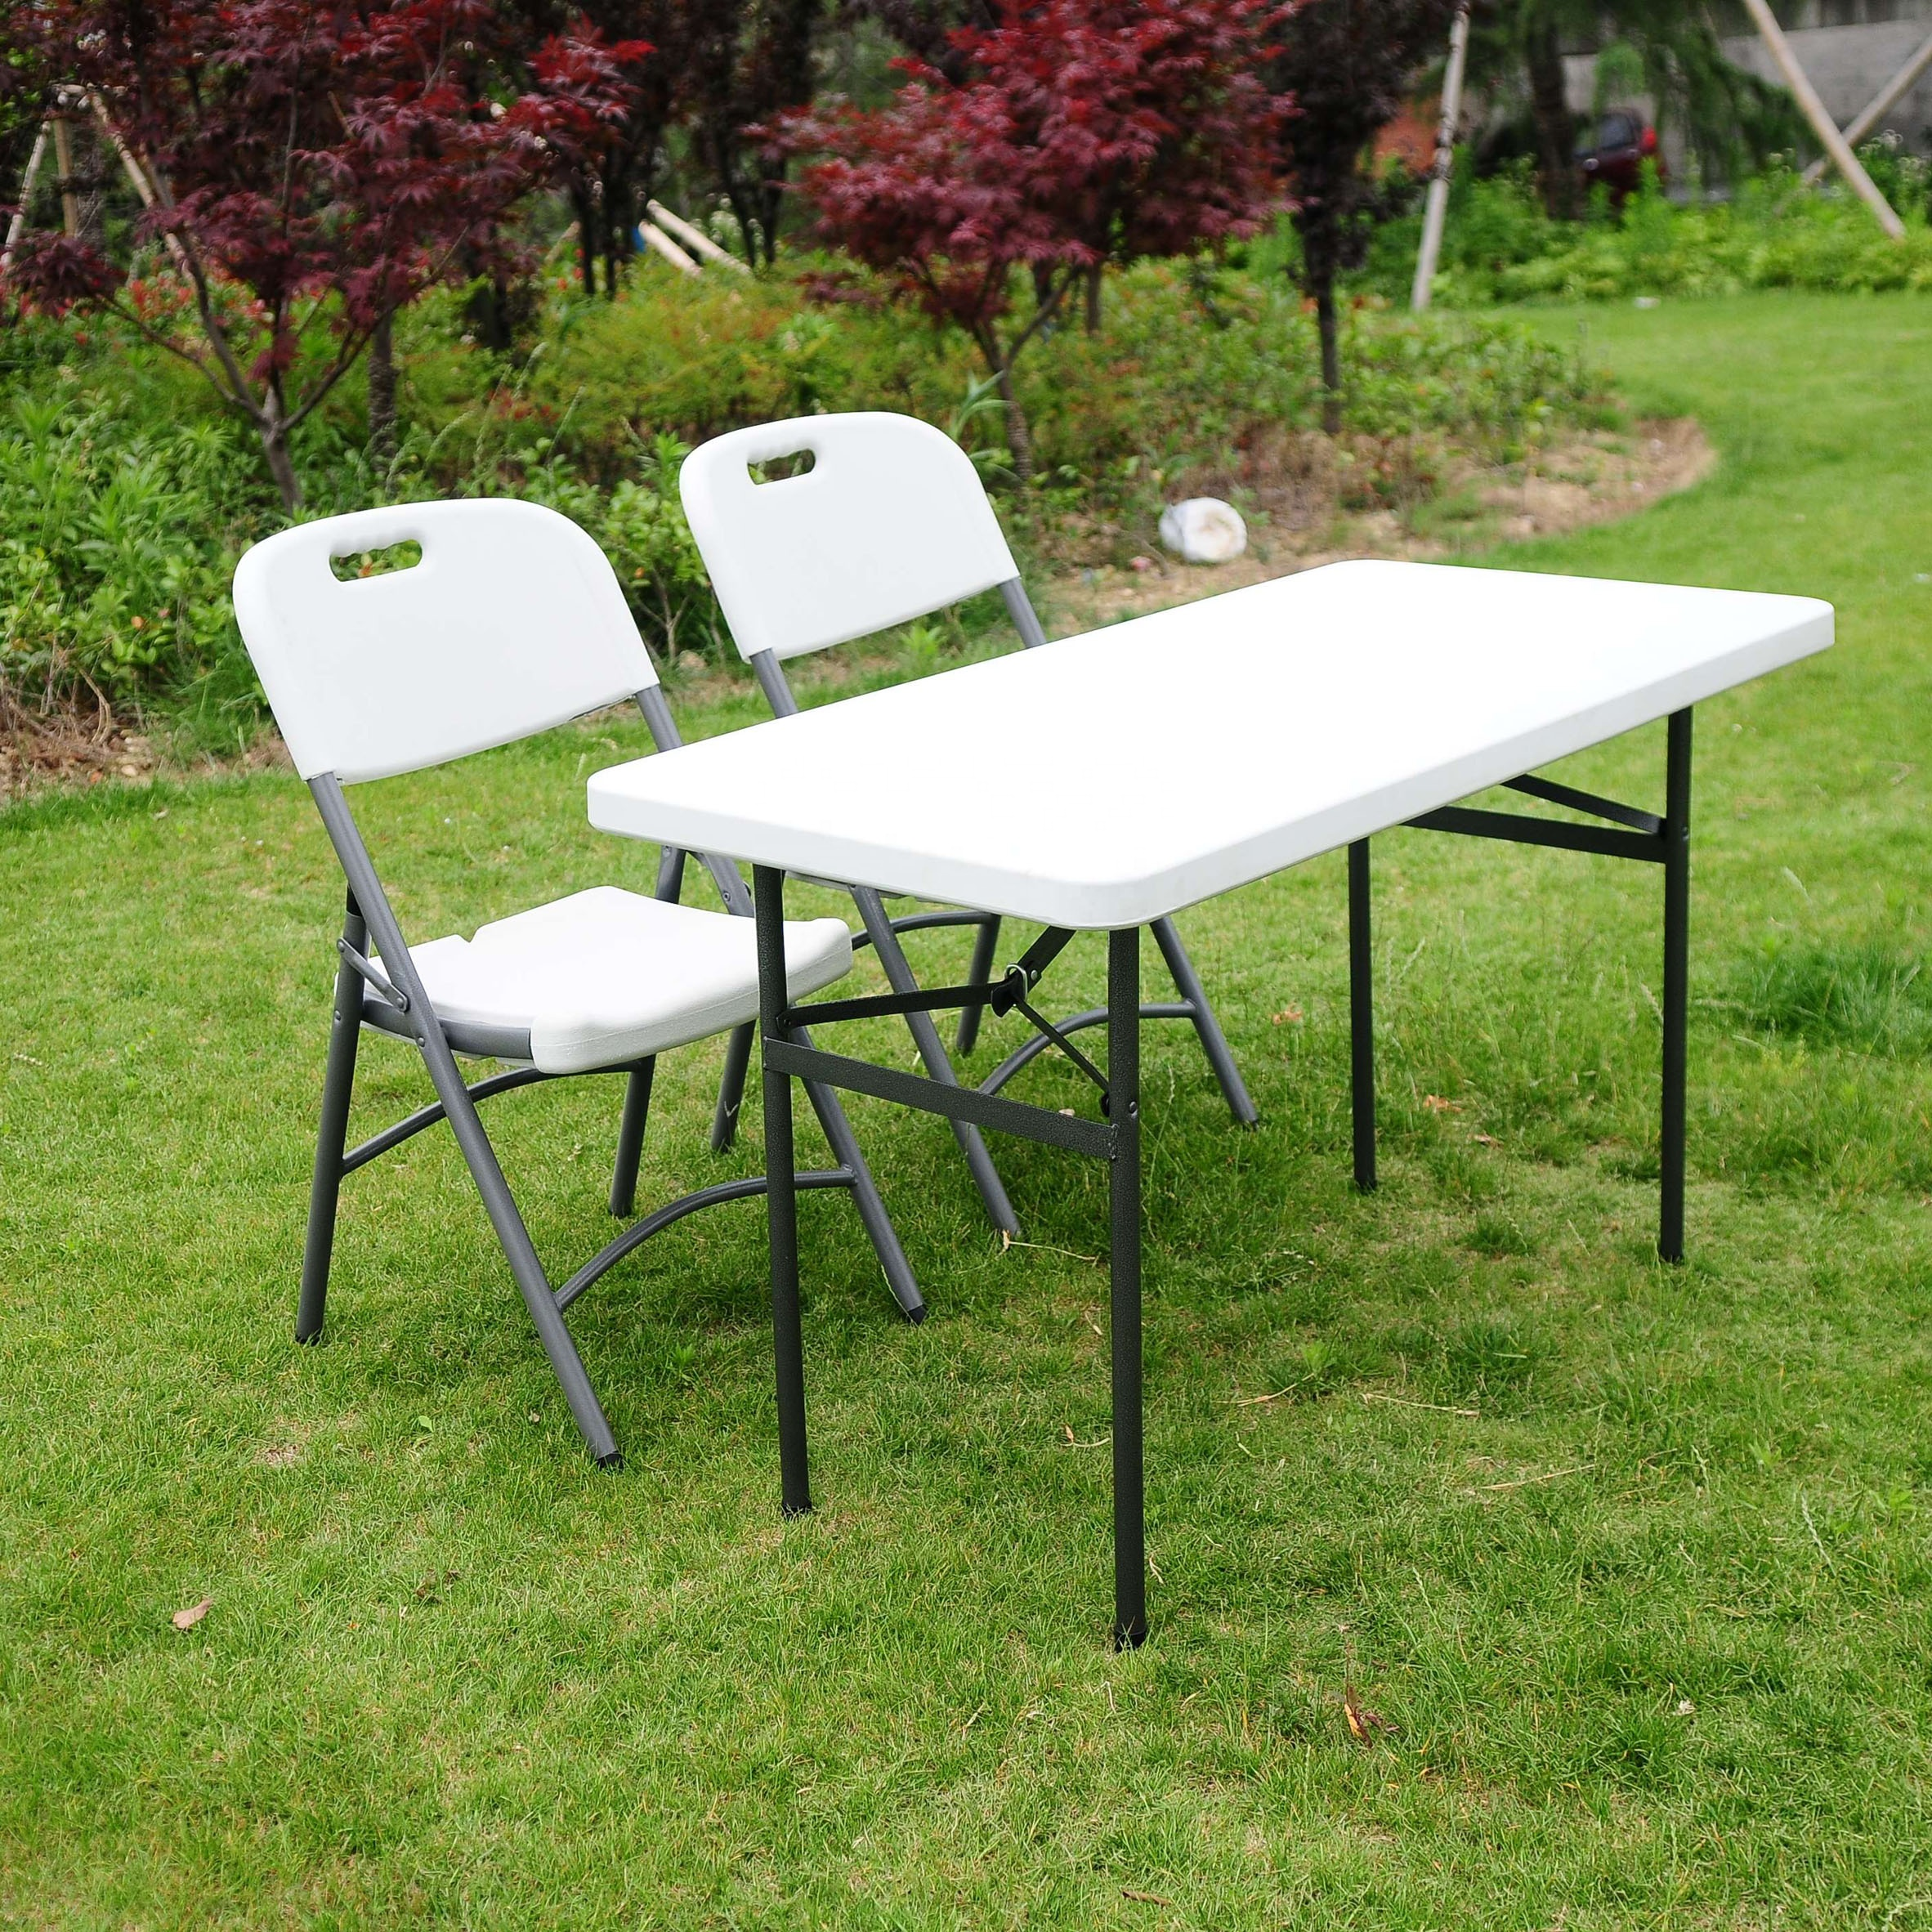 Folding Table With Handle.4 Multi Purpose Utility Center Fold Folding Table Carrying Handle White Granite Top Color Gray Frame Buy Table Plastic Table Outdoor Furniture